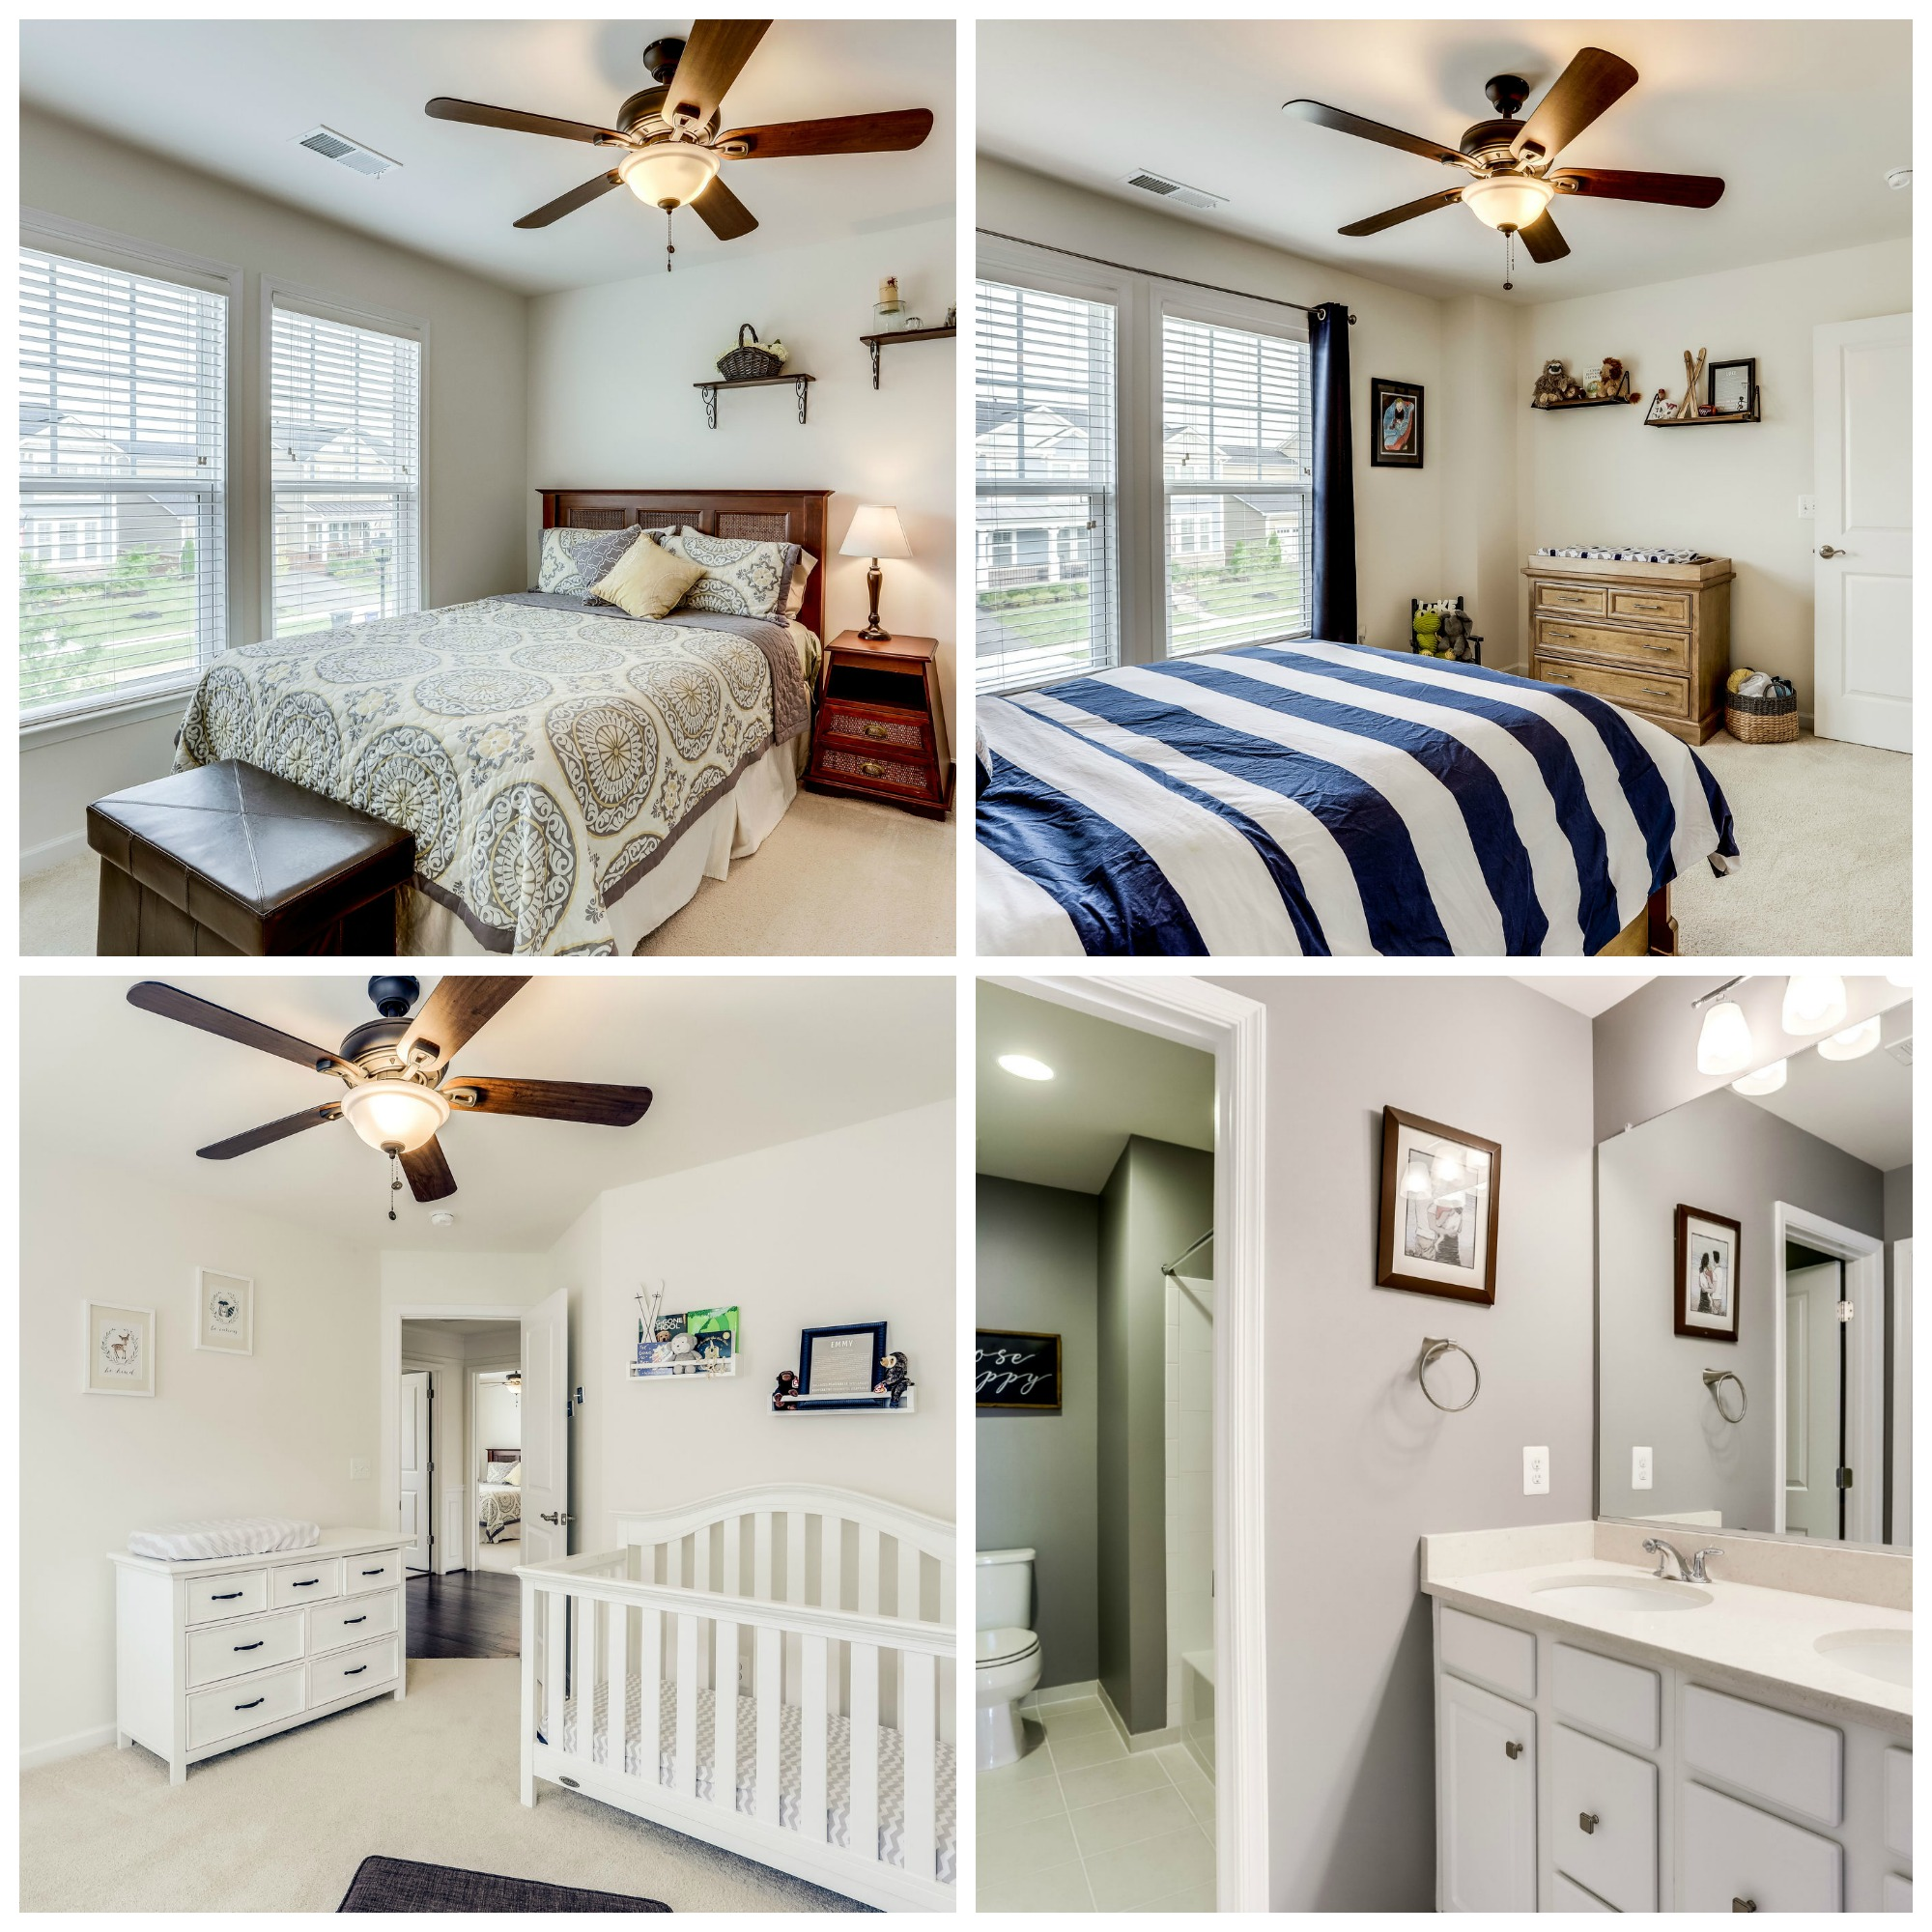 1007 Themis St SE, Leesburg_Additional Bedrooms and Bath